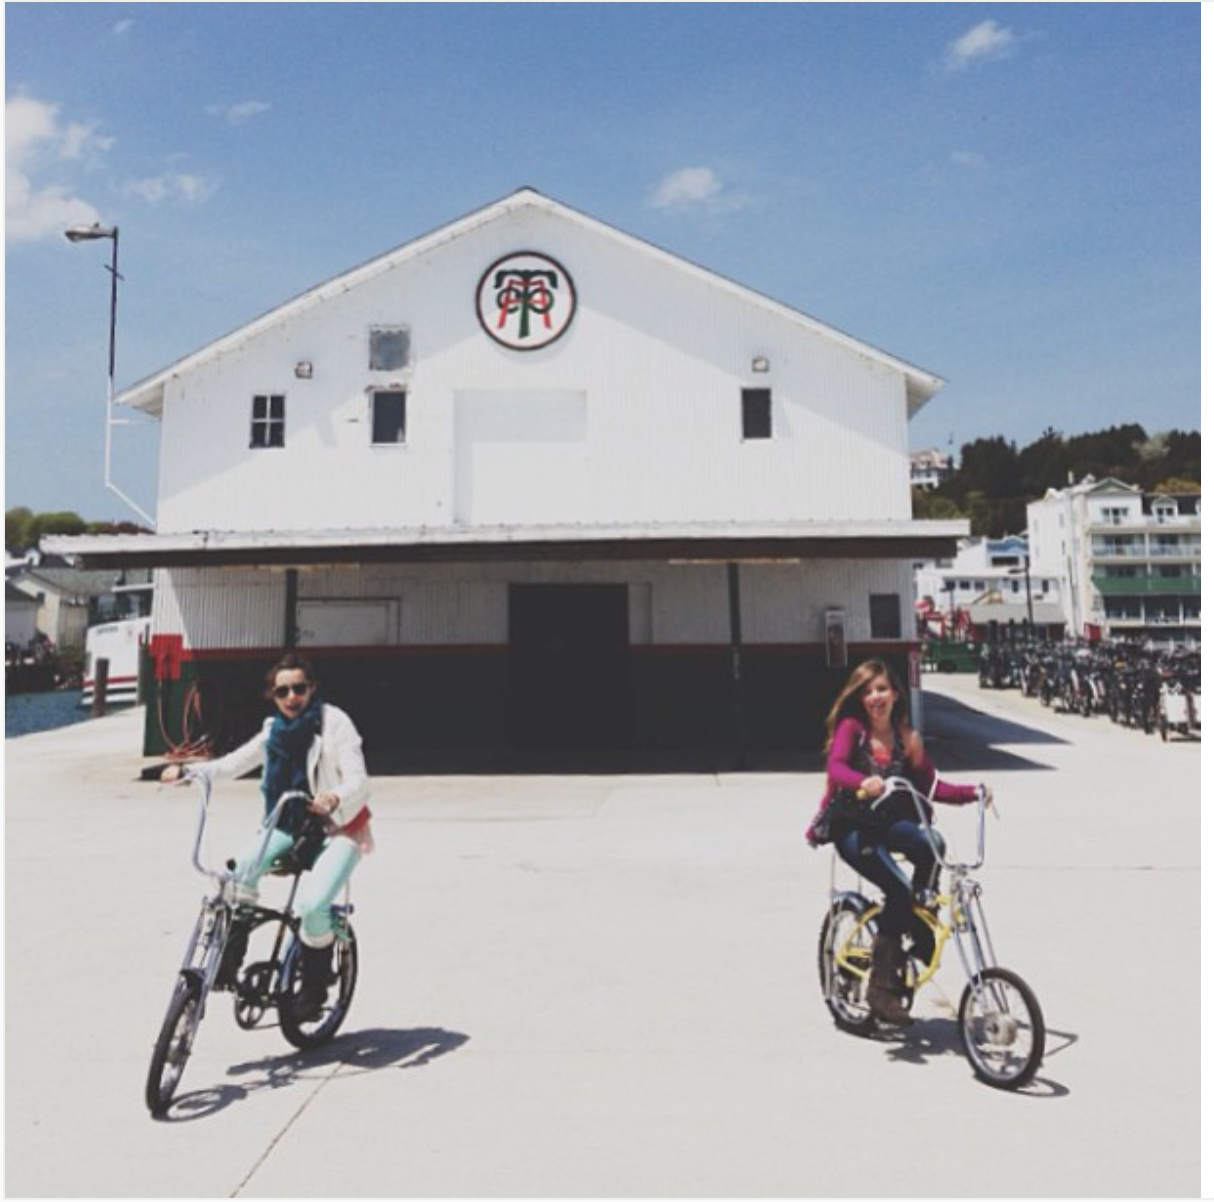 Emma and I riding our bikes // Photo by Shannon Sewell